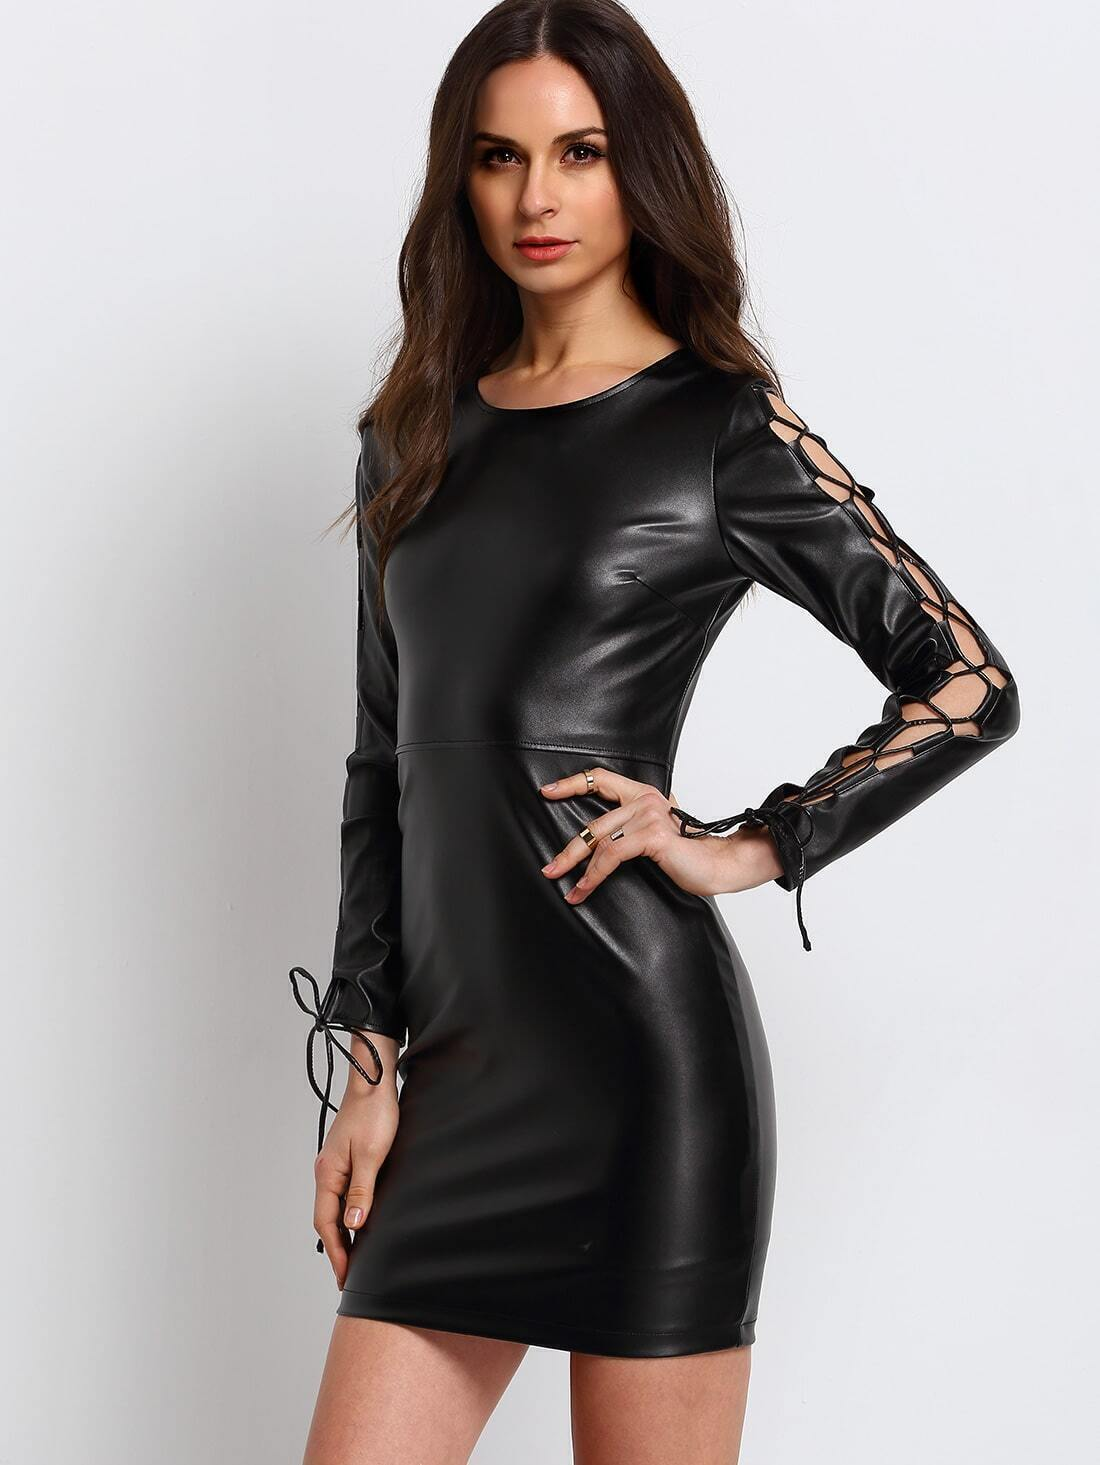 robe en simili cuir manches lacees noir french romwe With robe simili cuir noir